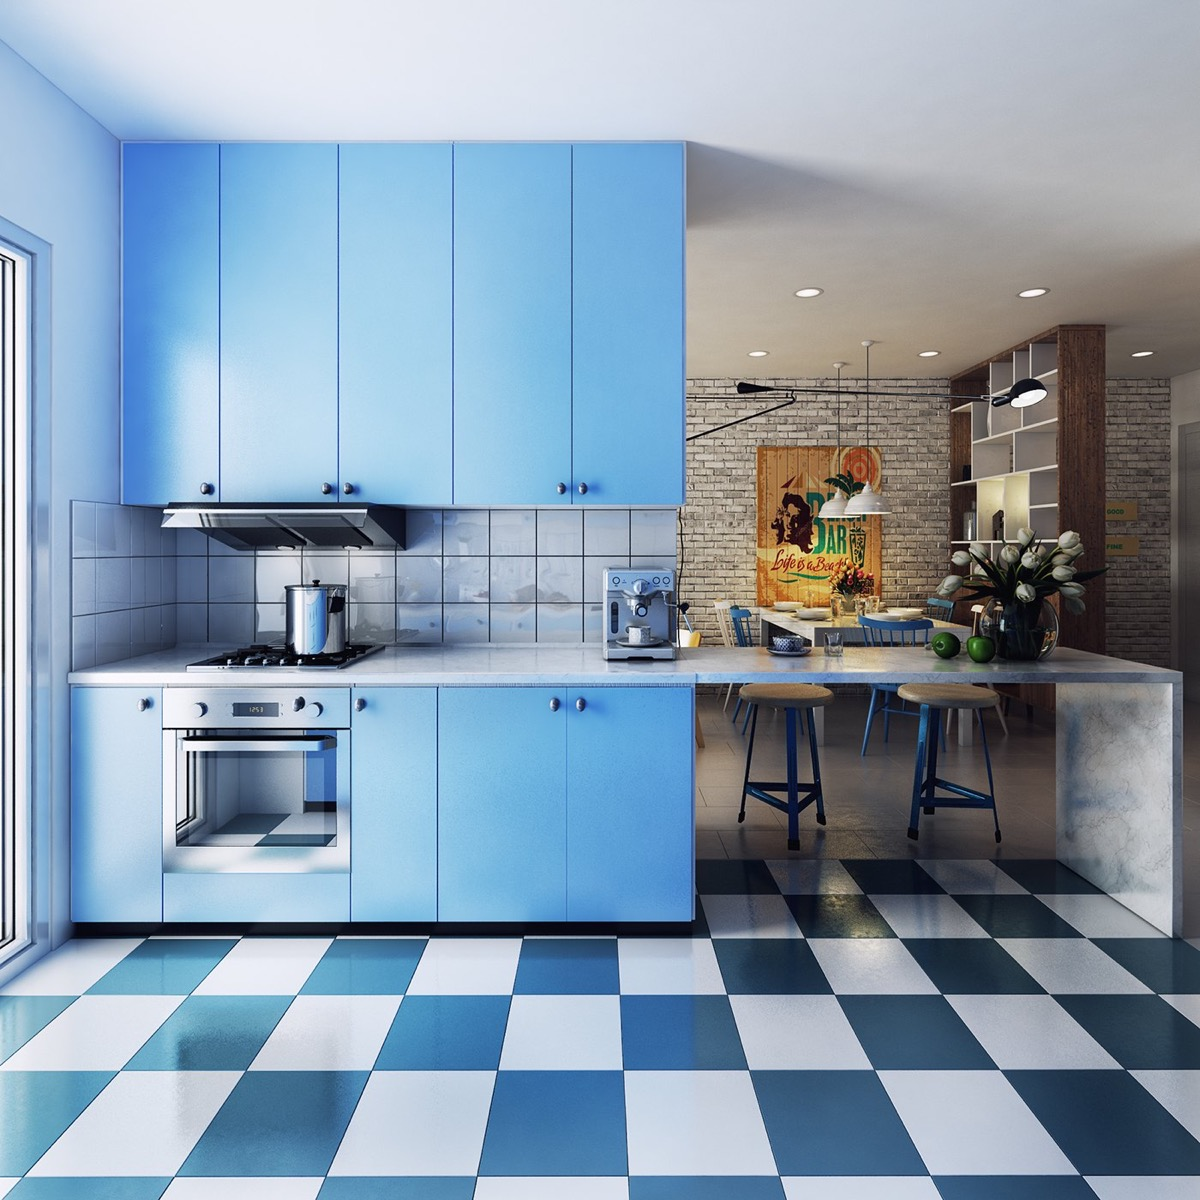 Interior Design Ideas & 30 Beautiful Blue Kitchens To Brighten Your Day